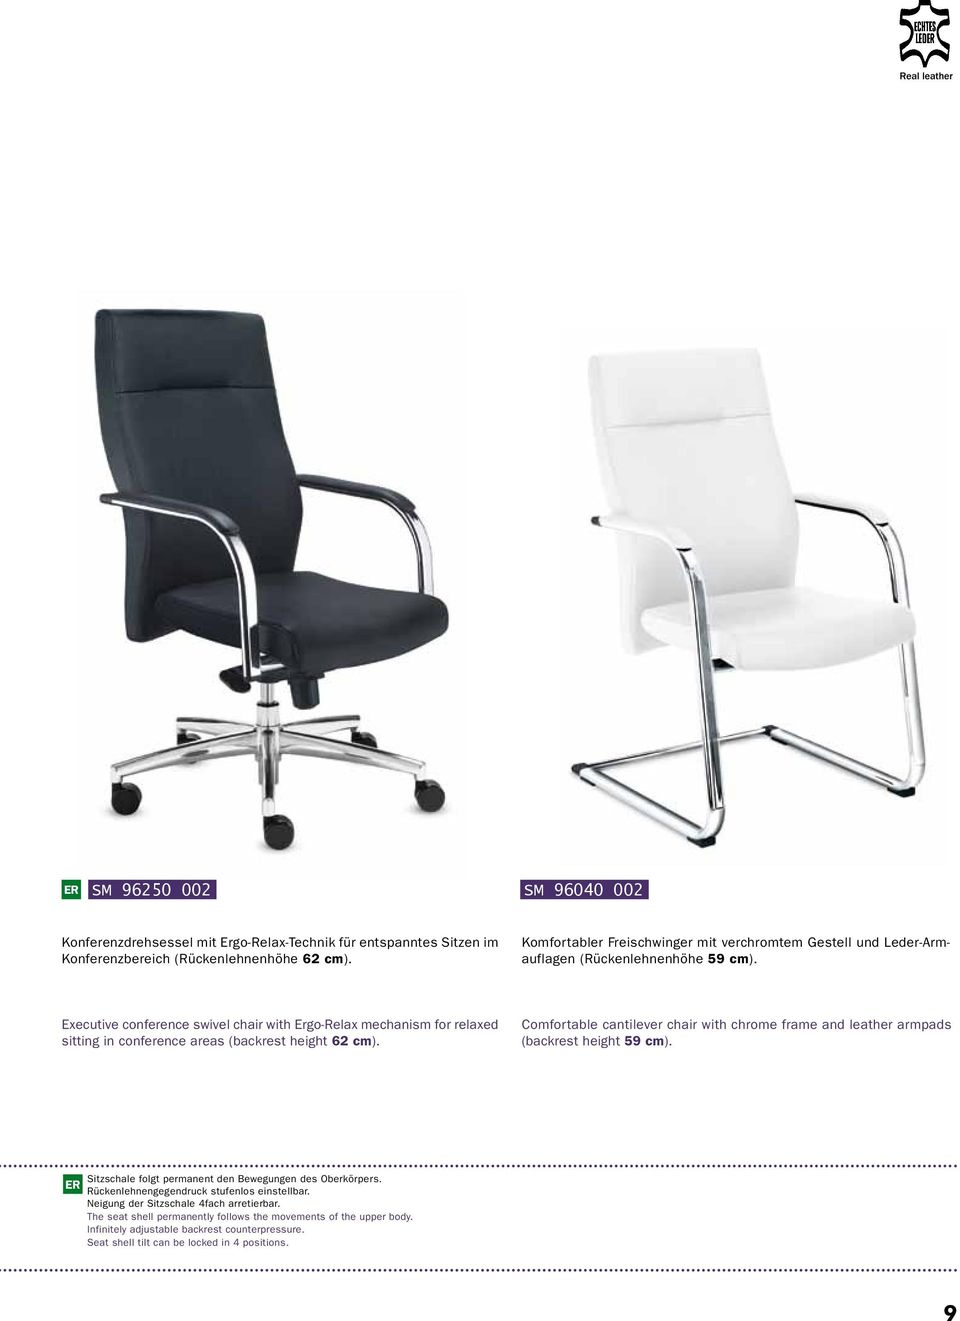 Executive conference swivel chair with Ergo-Relax mechanism for relaxed sitting in conference areas (backrest height 62 cm).